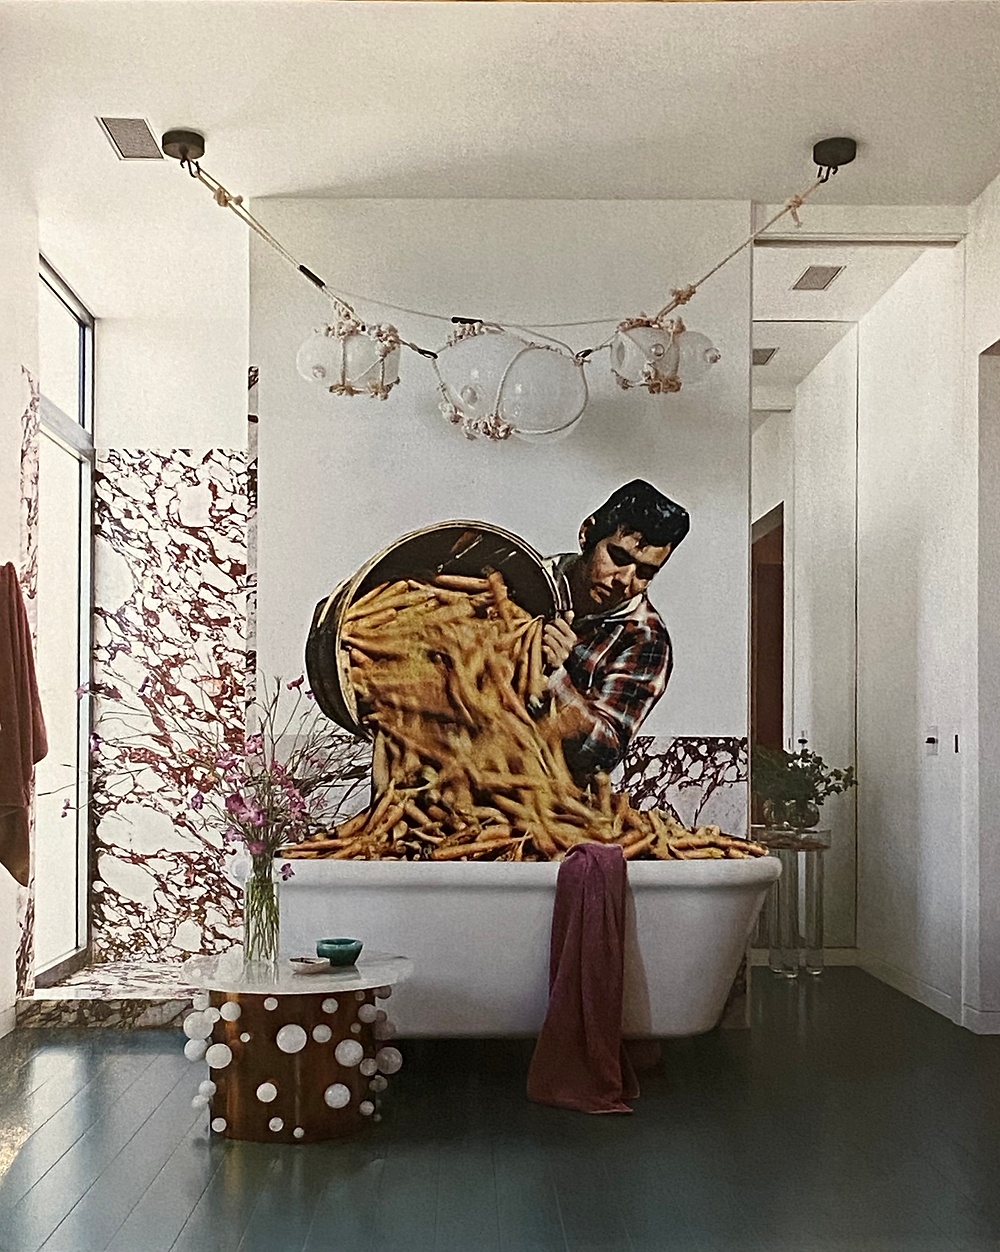 A collage of a man pouring a bushel of carrots into the bathtub of a modern, formal bathroom